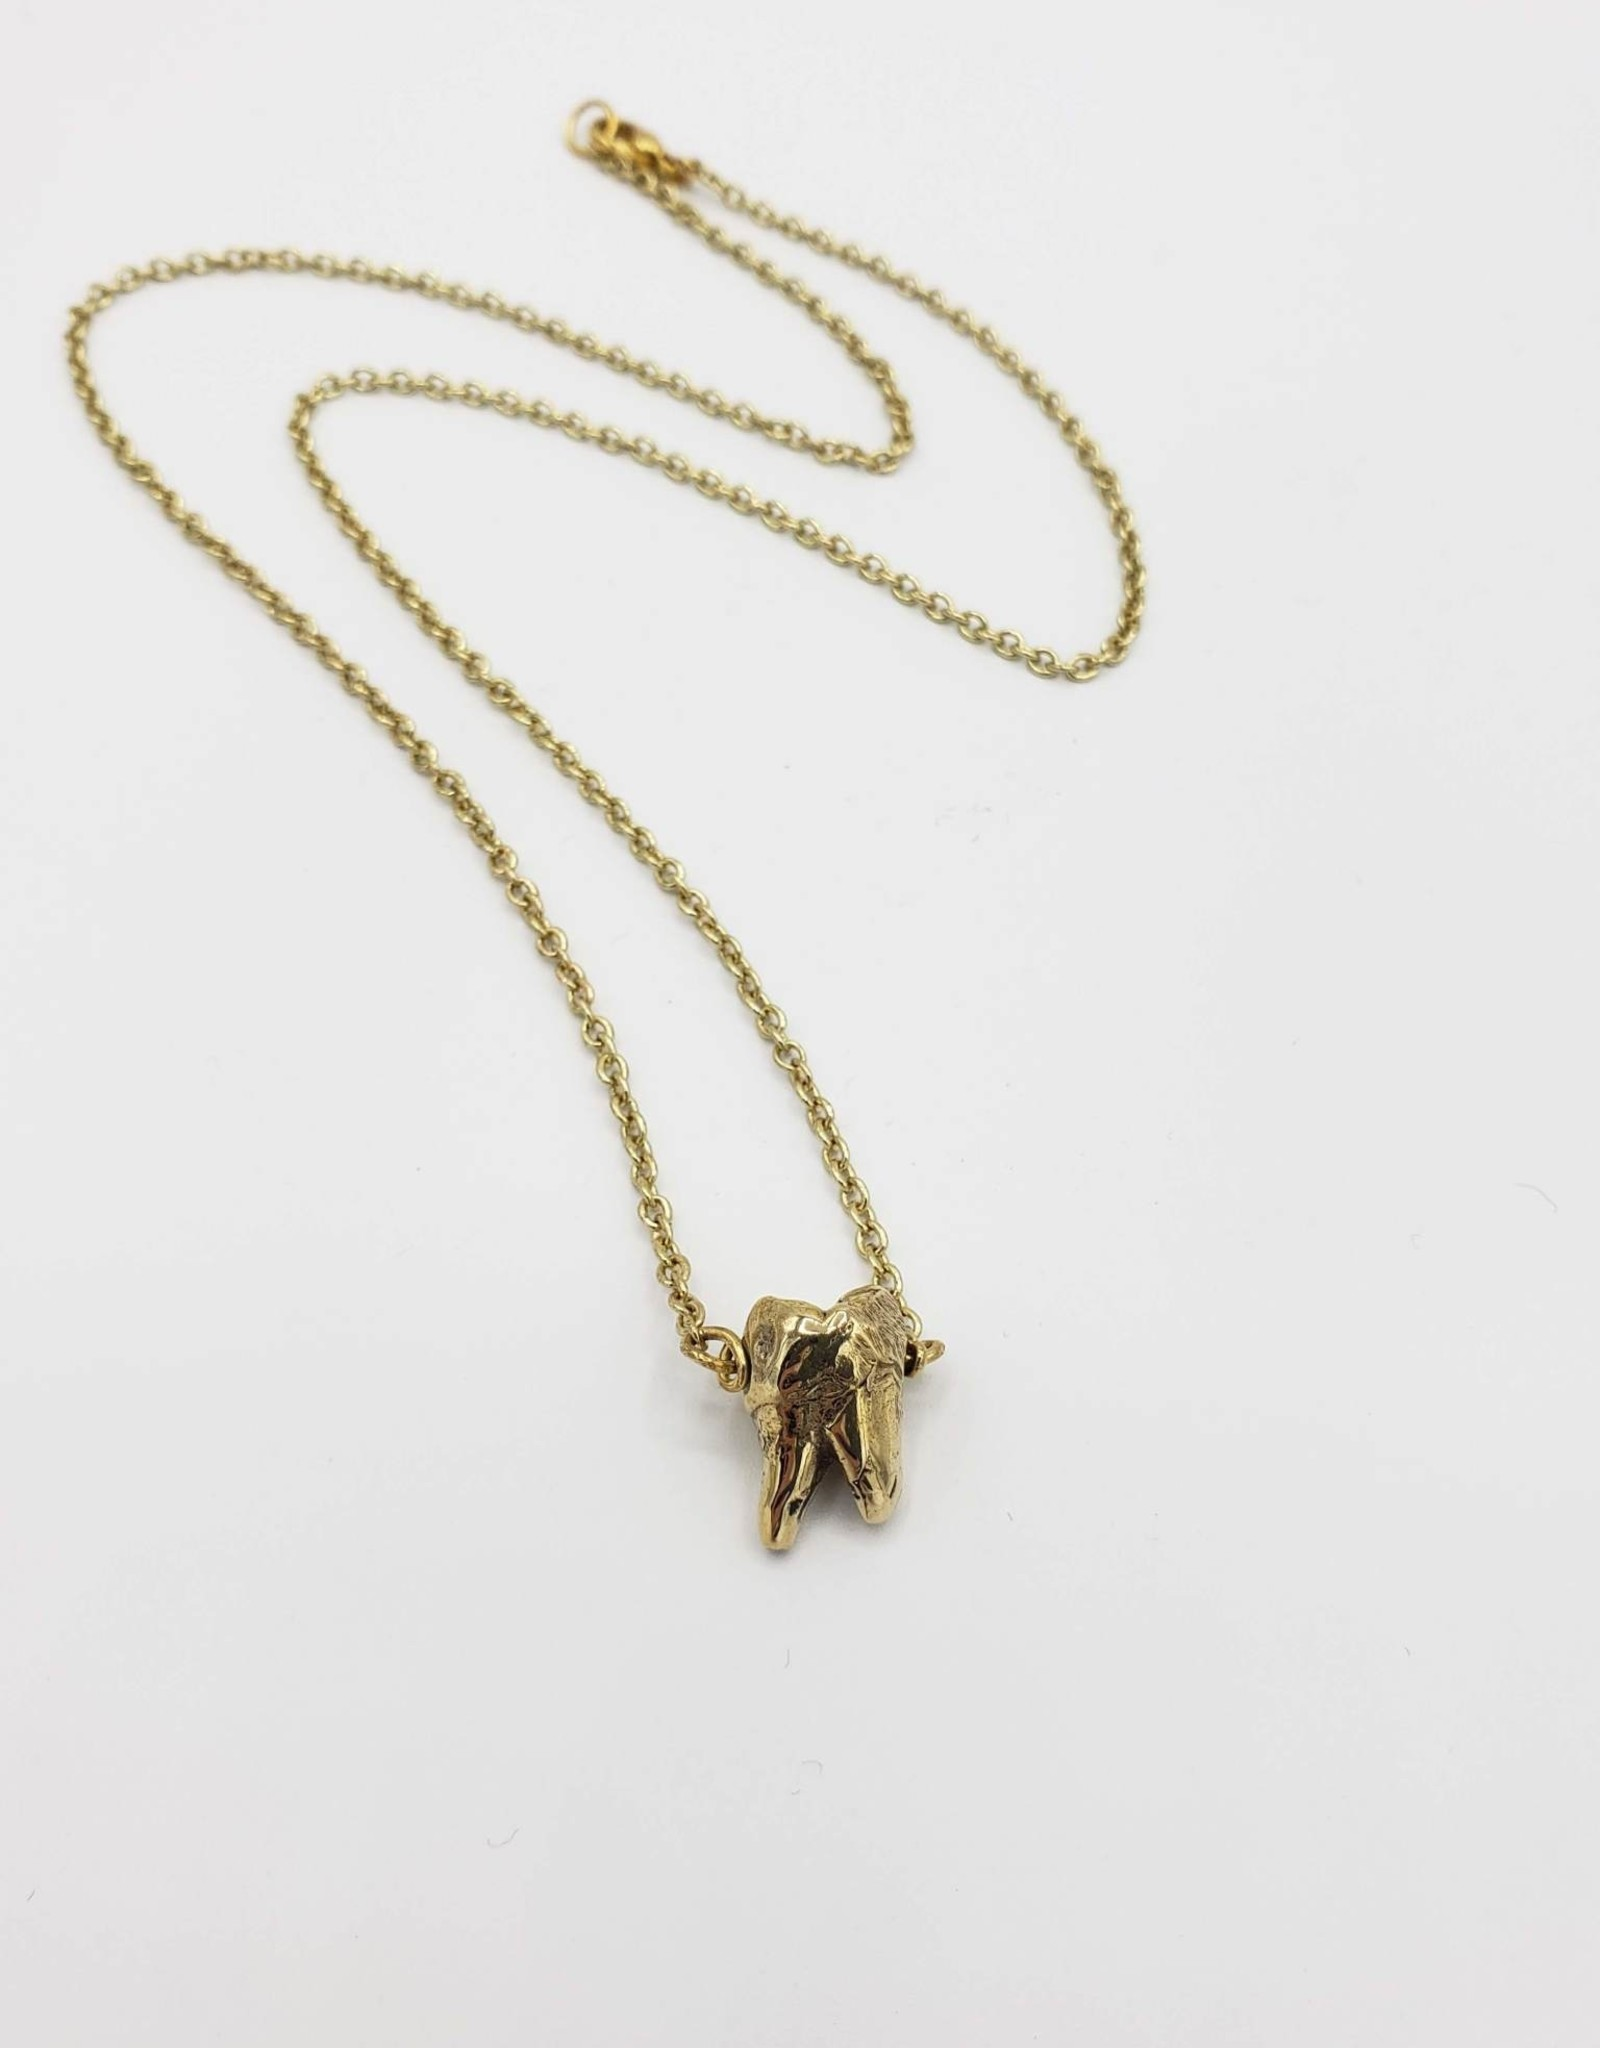 Redux Single Tooth Pendant bronze - double split root, high polish gold plated chain